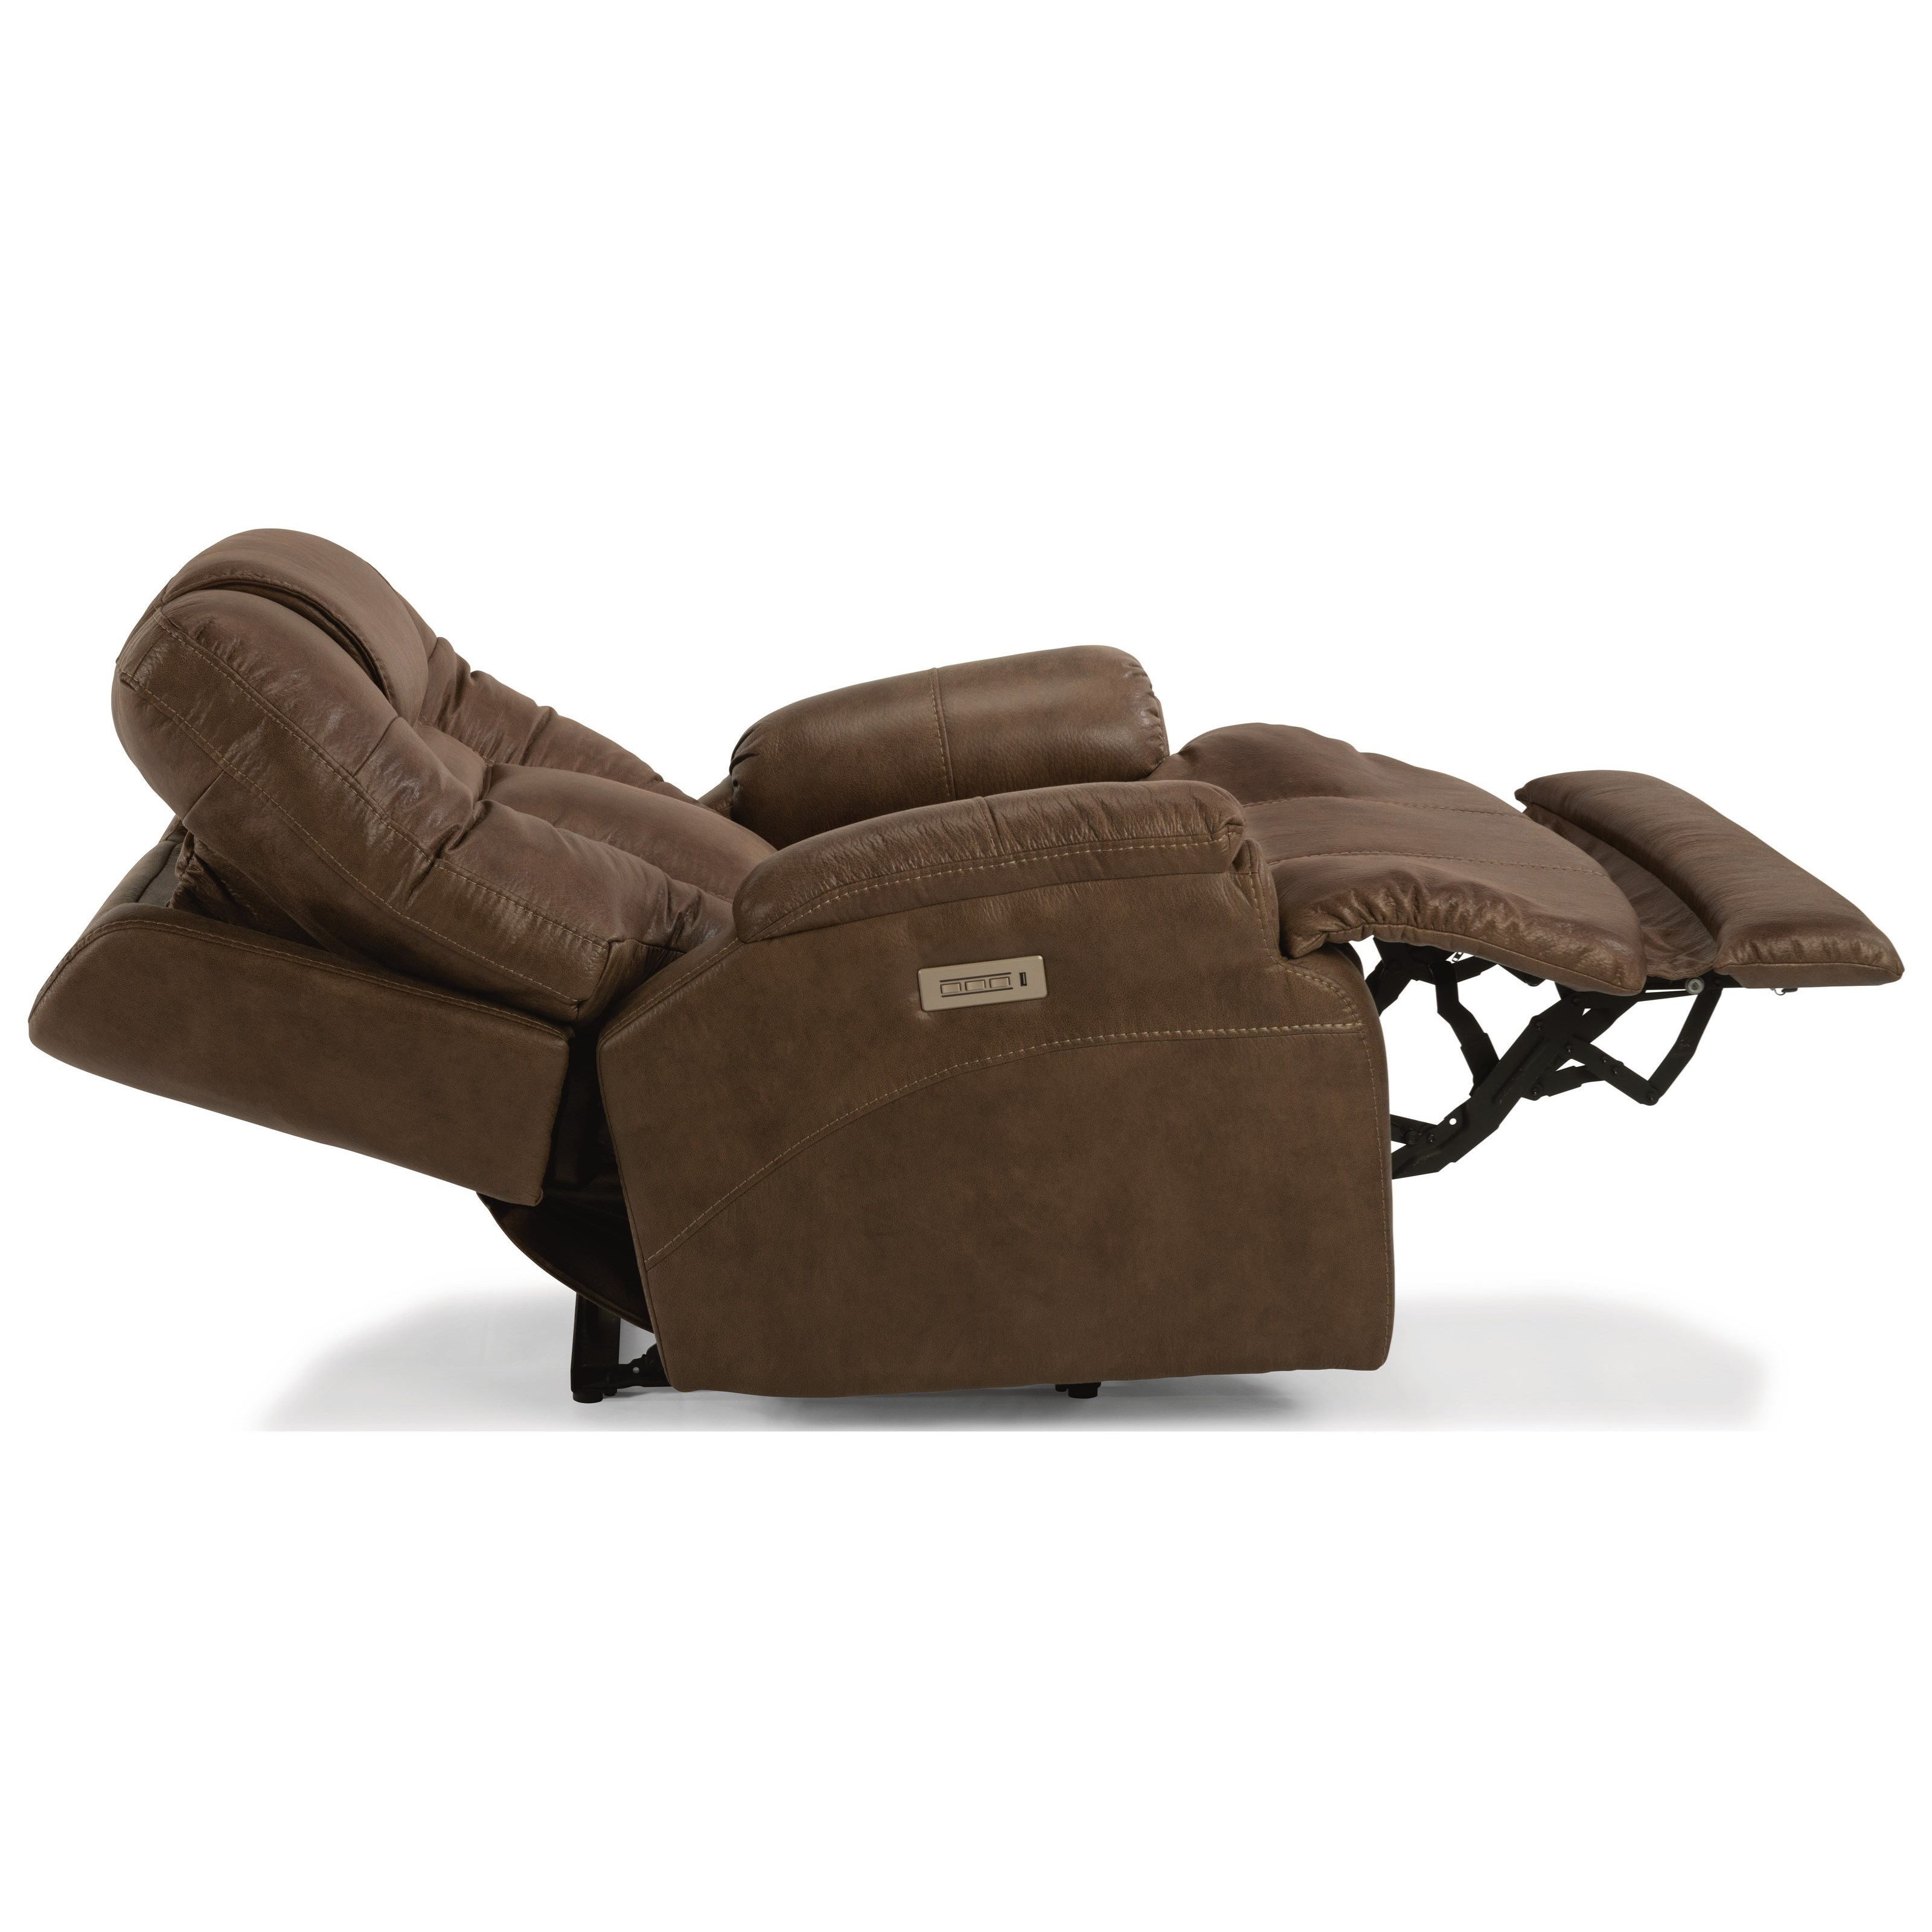 Flexsteel Marley 1714 50ph Casual Power Recliner With